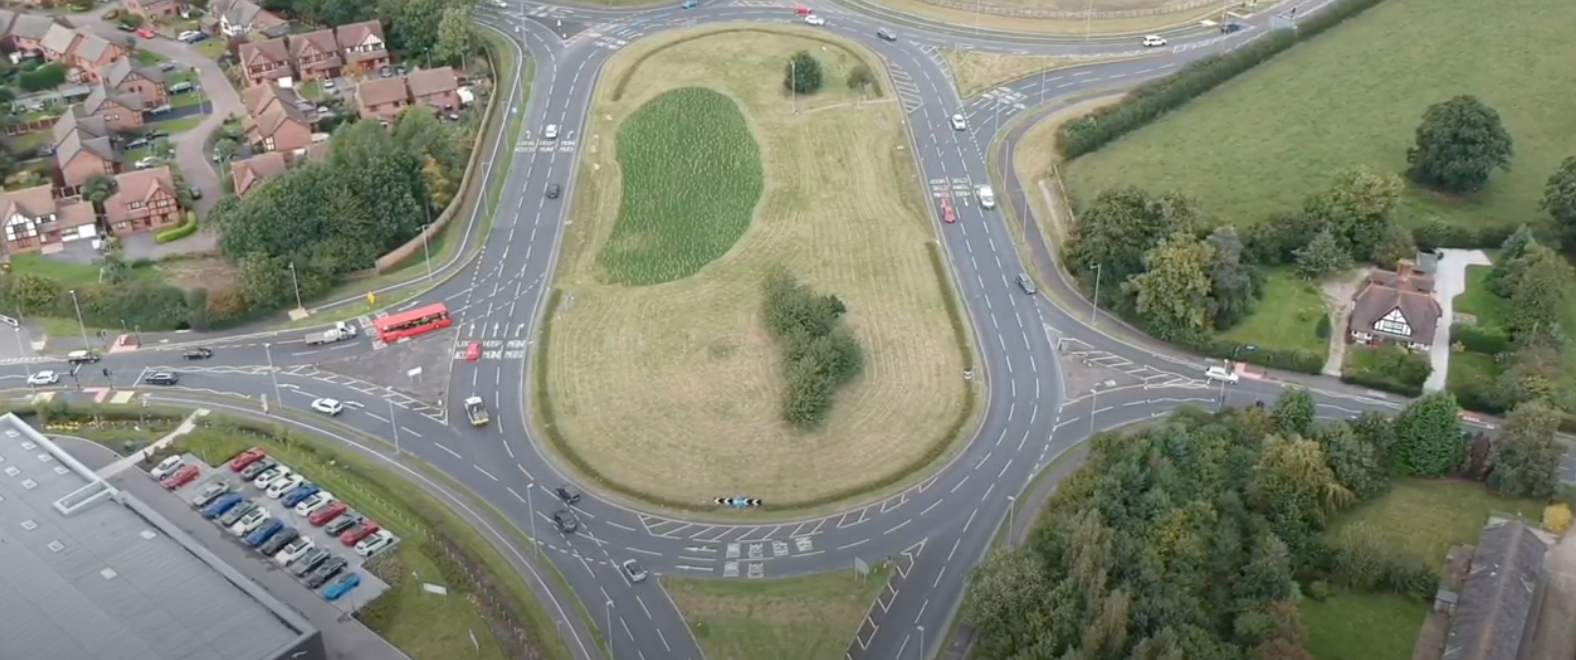 Crewe Green Roundabout